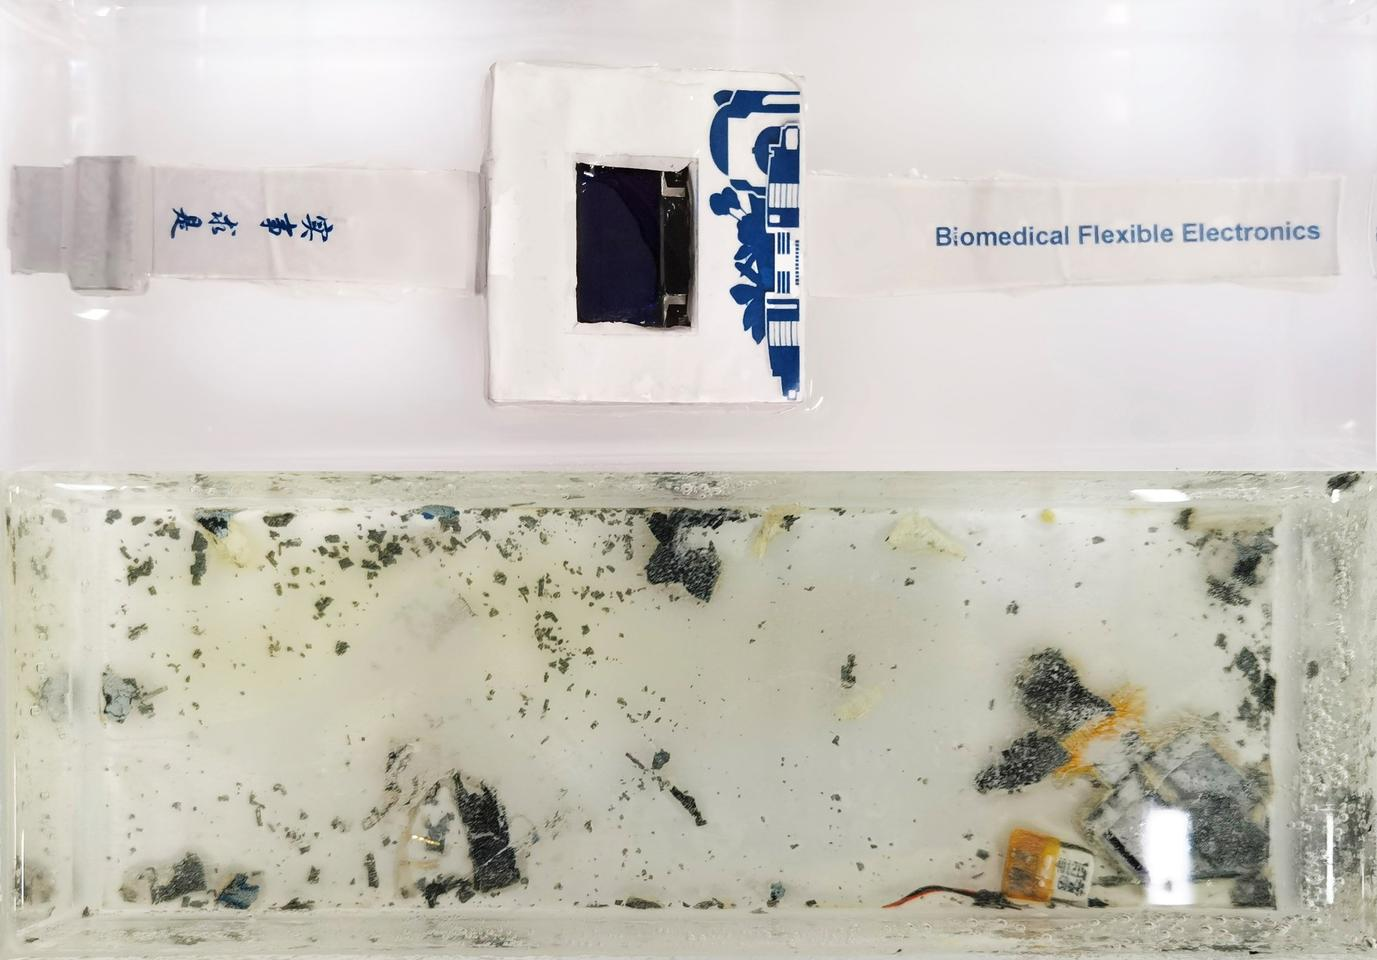 A novel prototype smartwatch both before and after dissolving in water